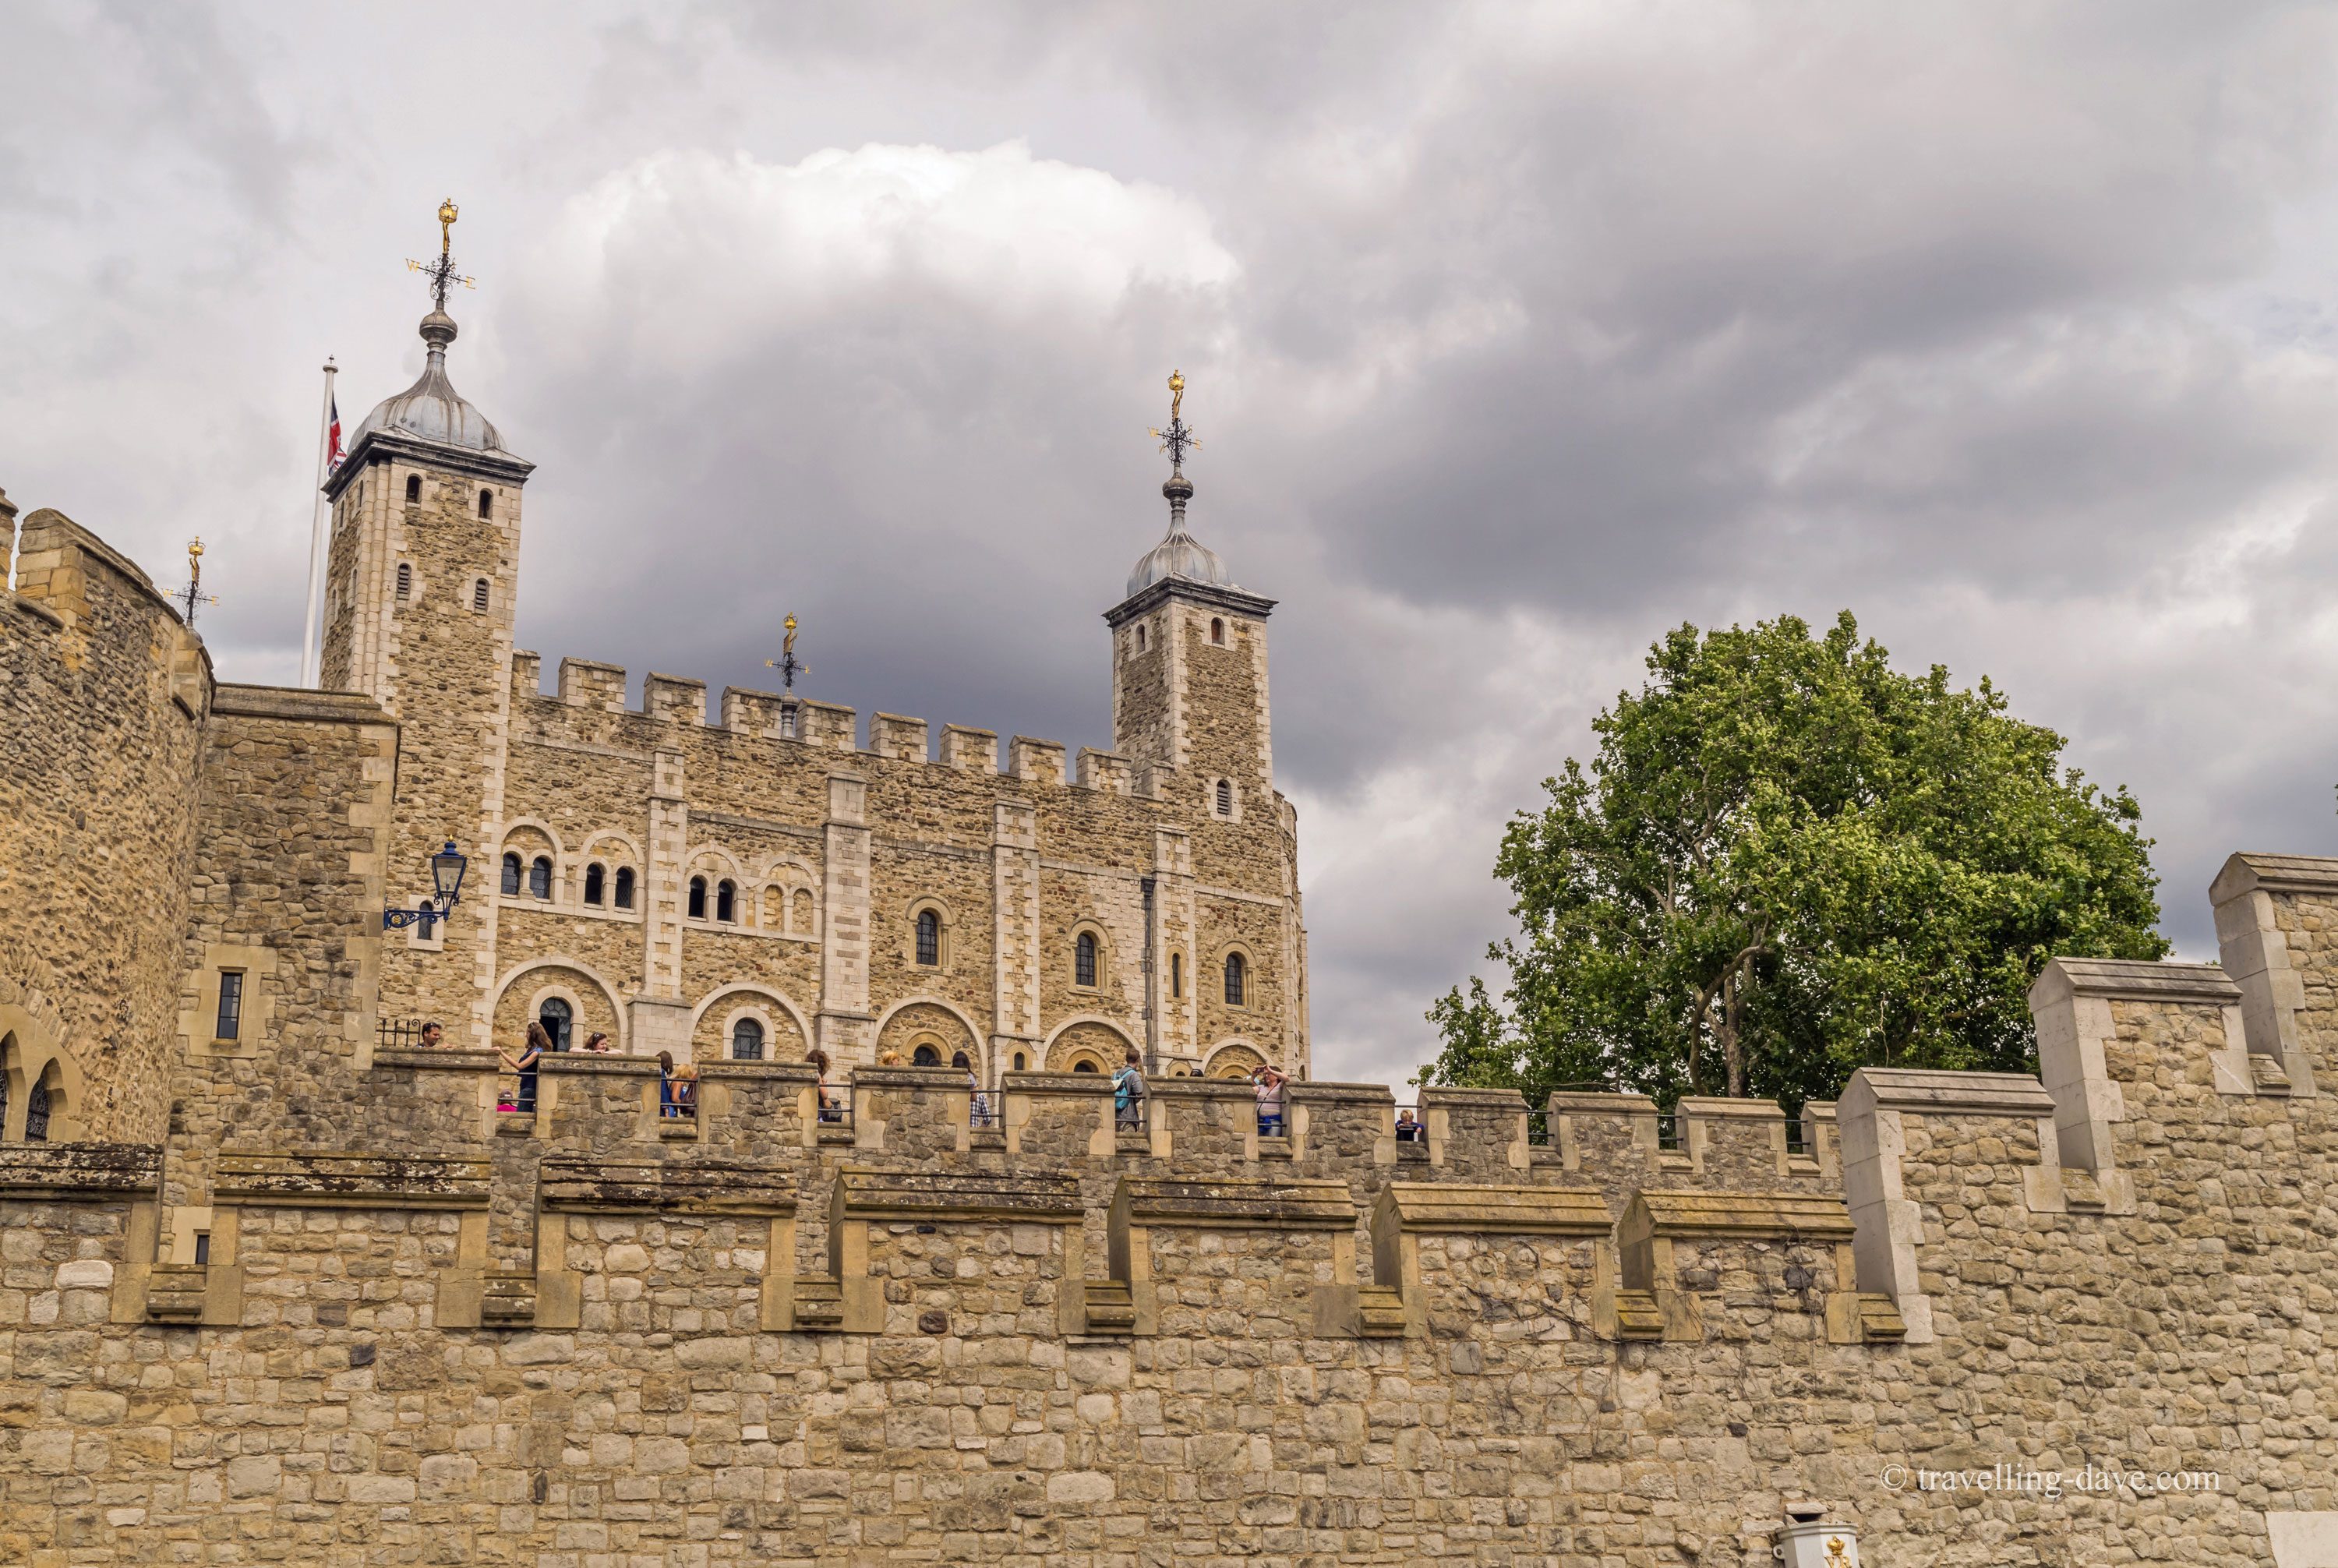 Looking up at the Tower of London